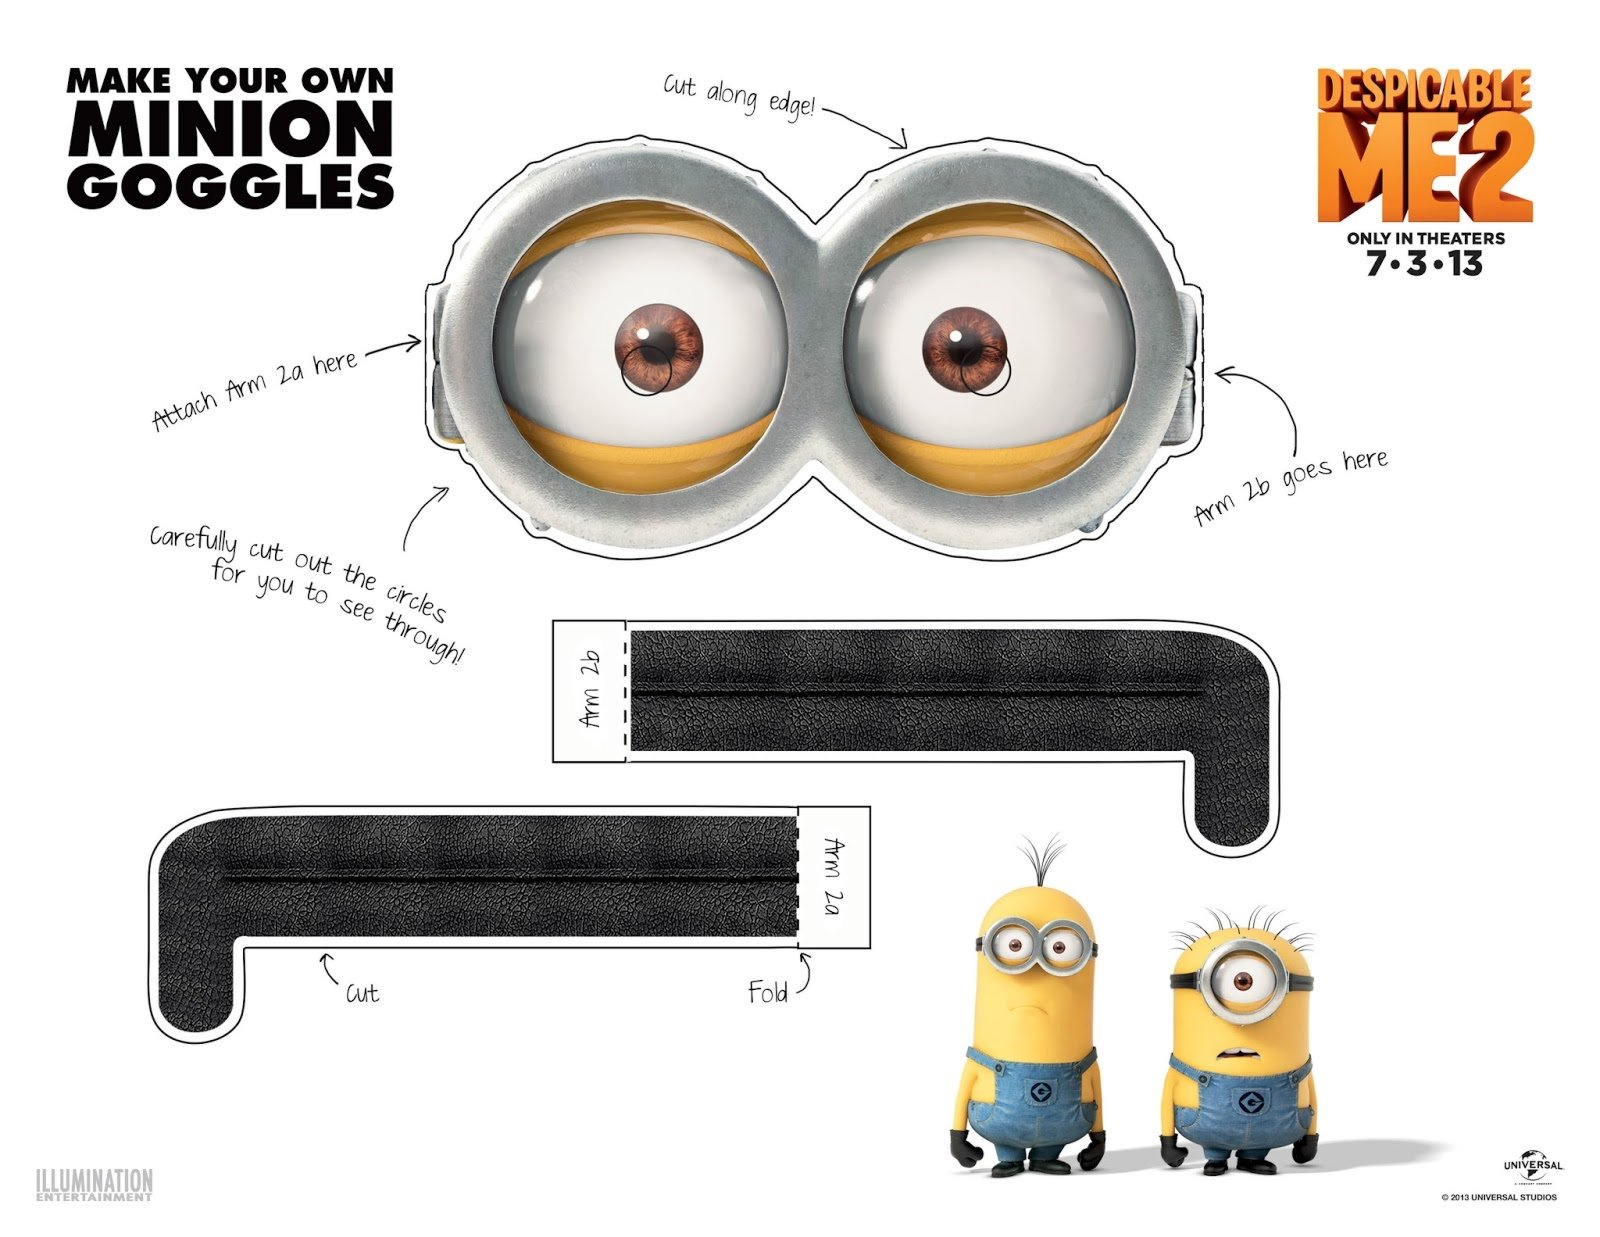 photograph regarding Minion Eye Printable identified as 5 Simple Strategies toward Crank out Minion Goggles or Gles